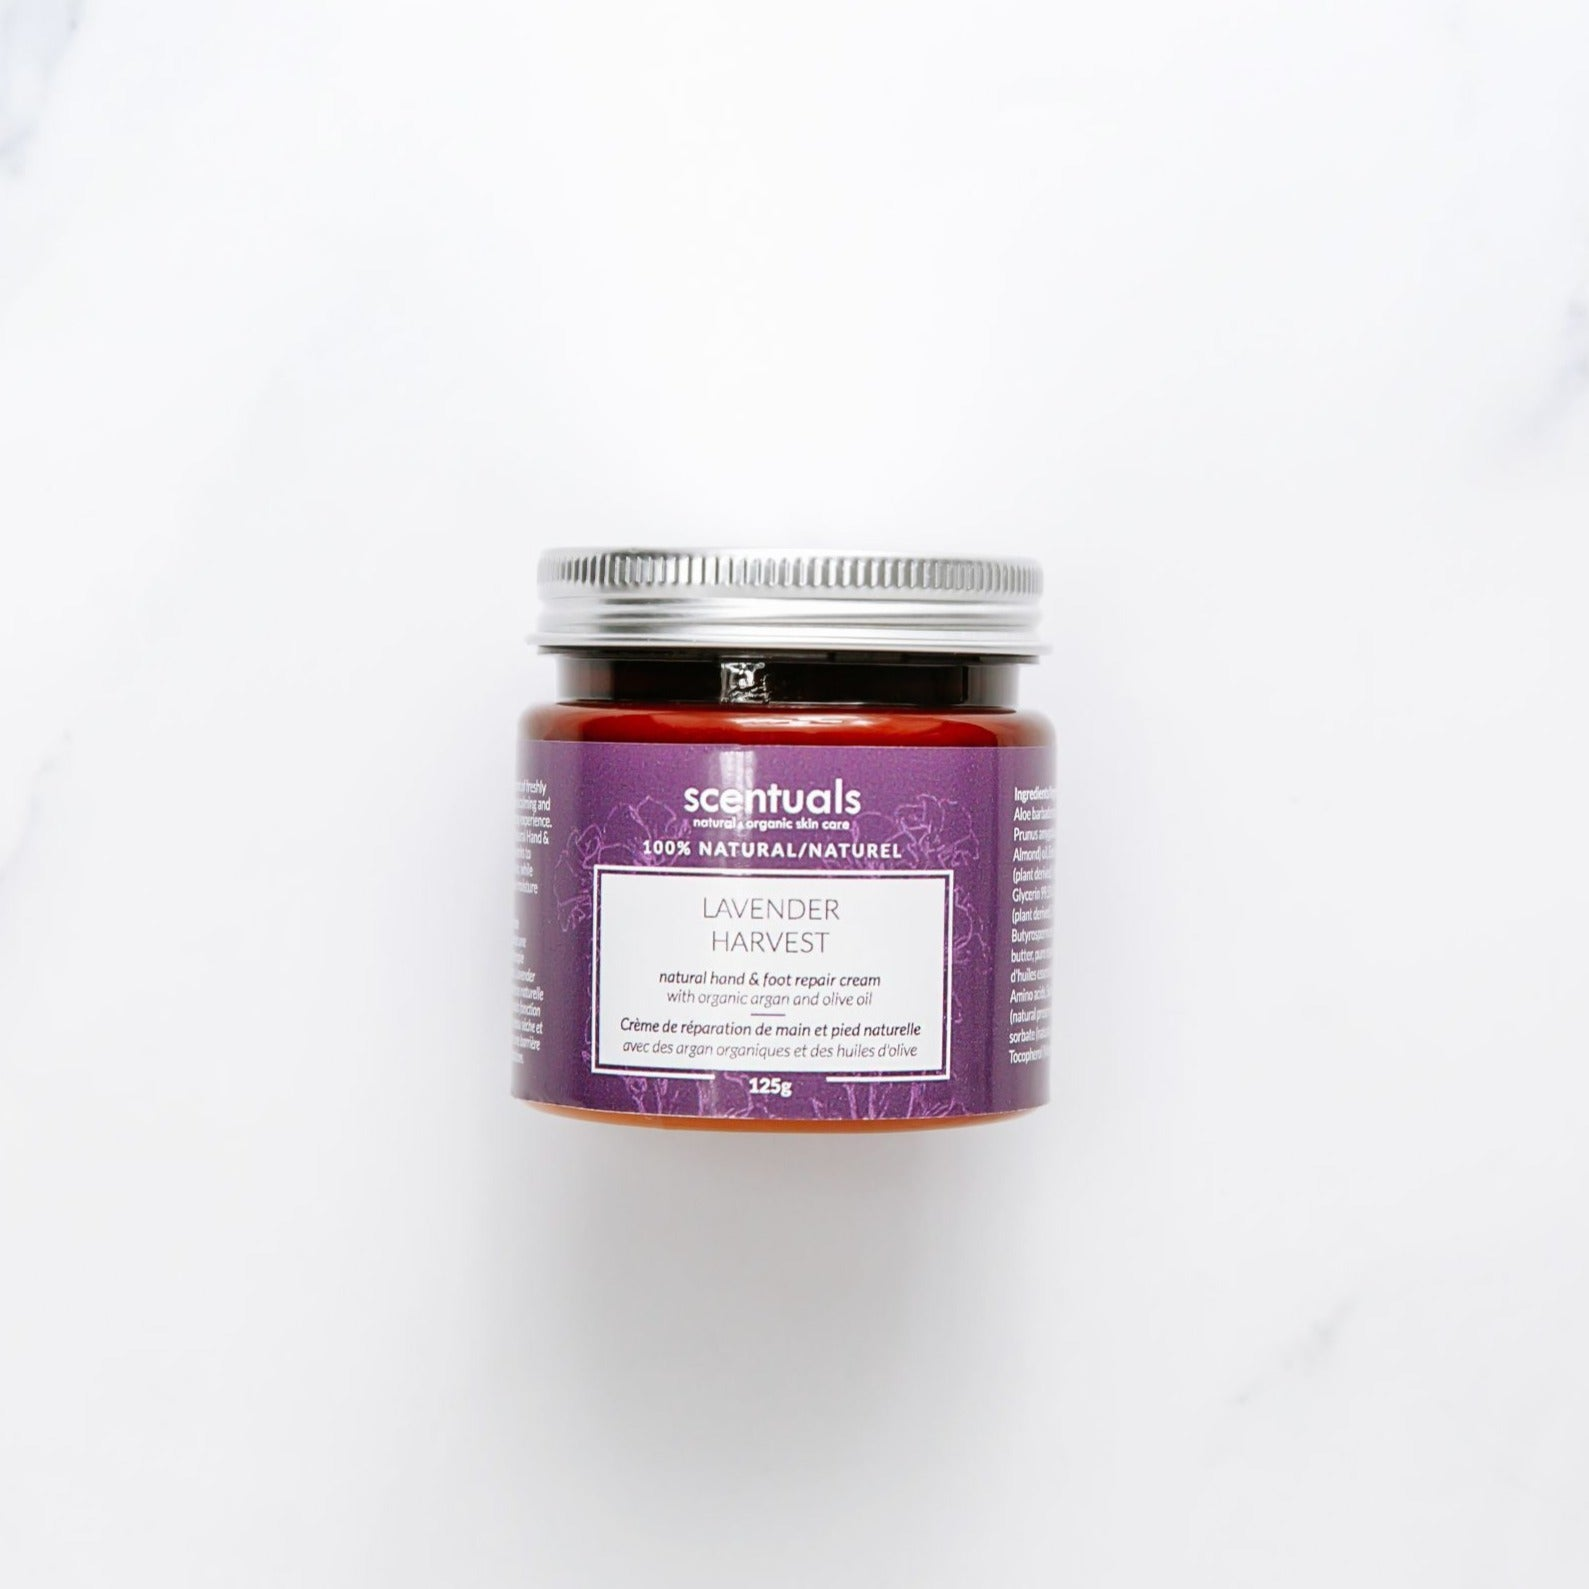 Jiyubox: Lavender Harvest Hand & Foot Repair Cream by Scentuals